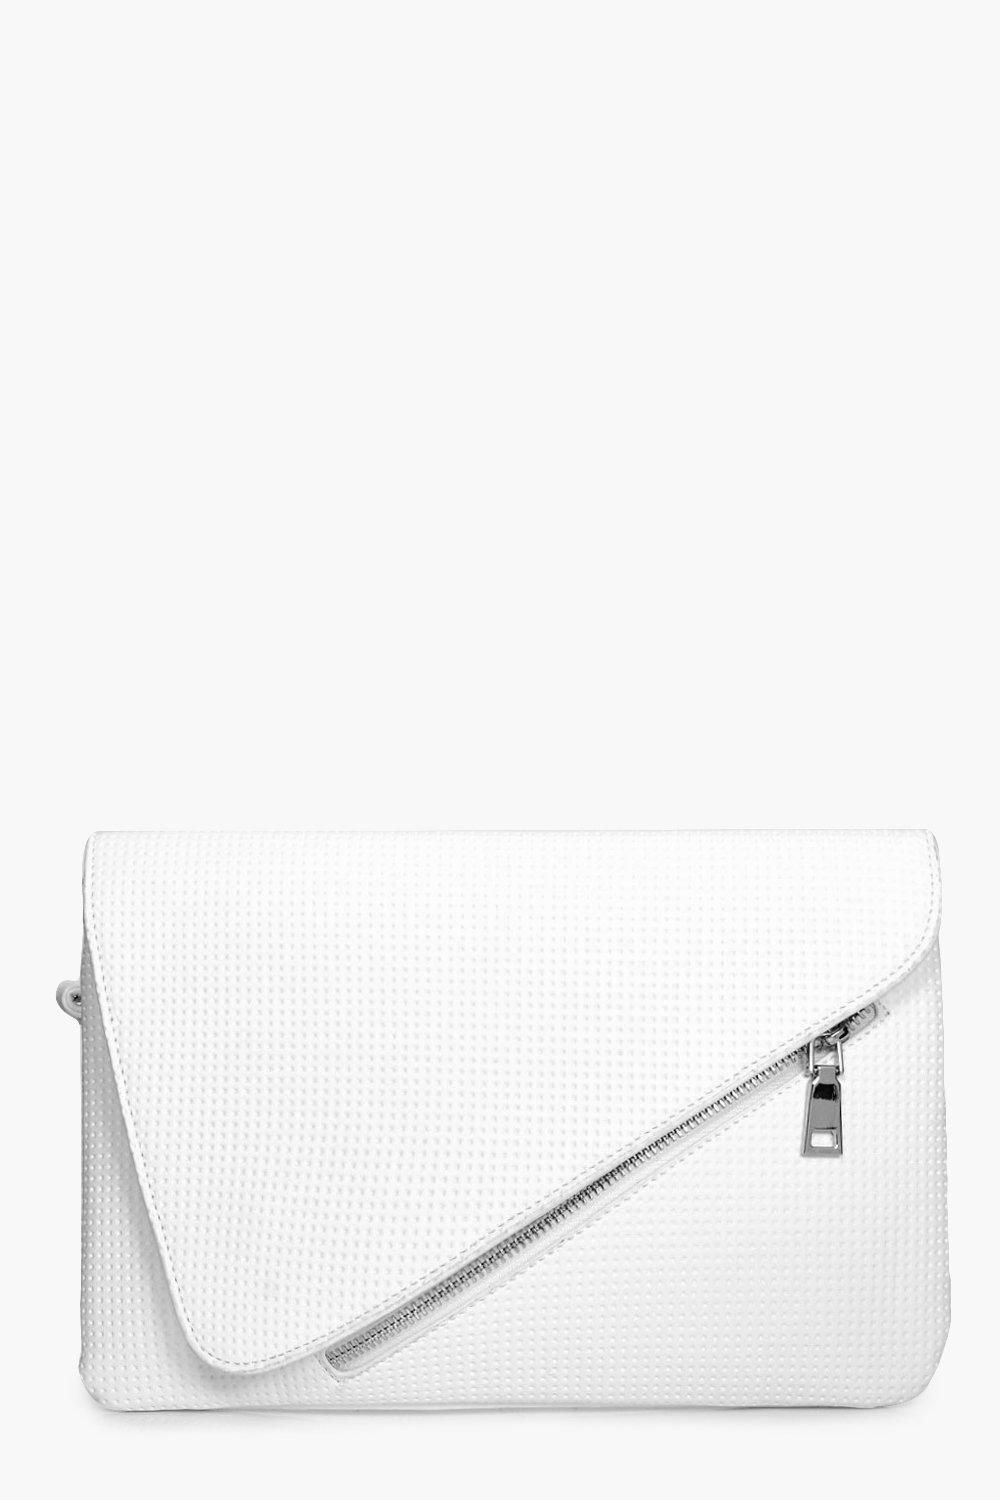 Perforated Clutch - white - Ivy Perforated Clutch